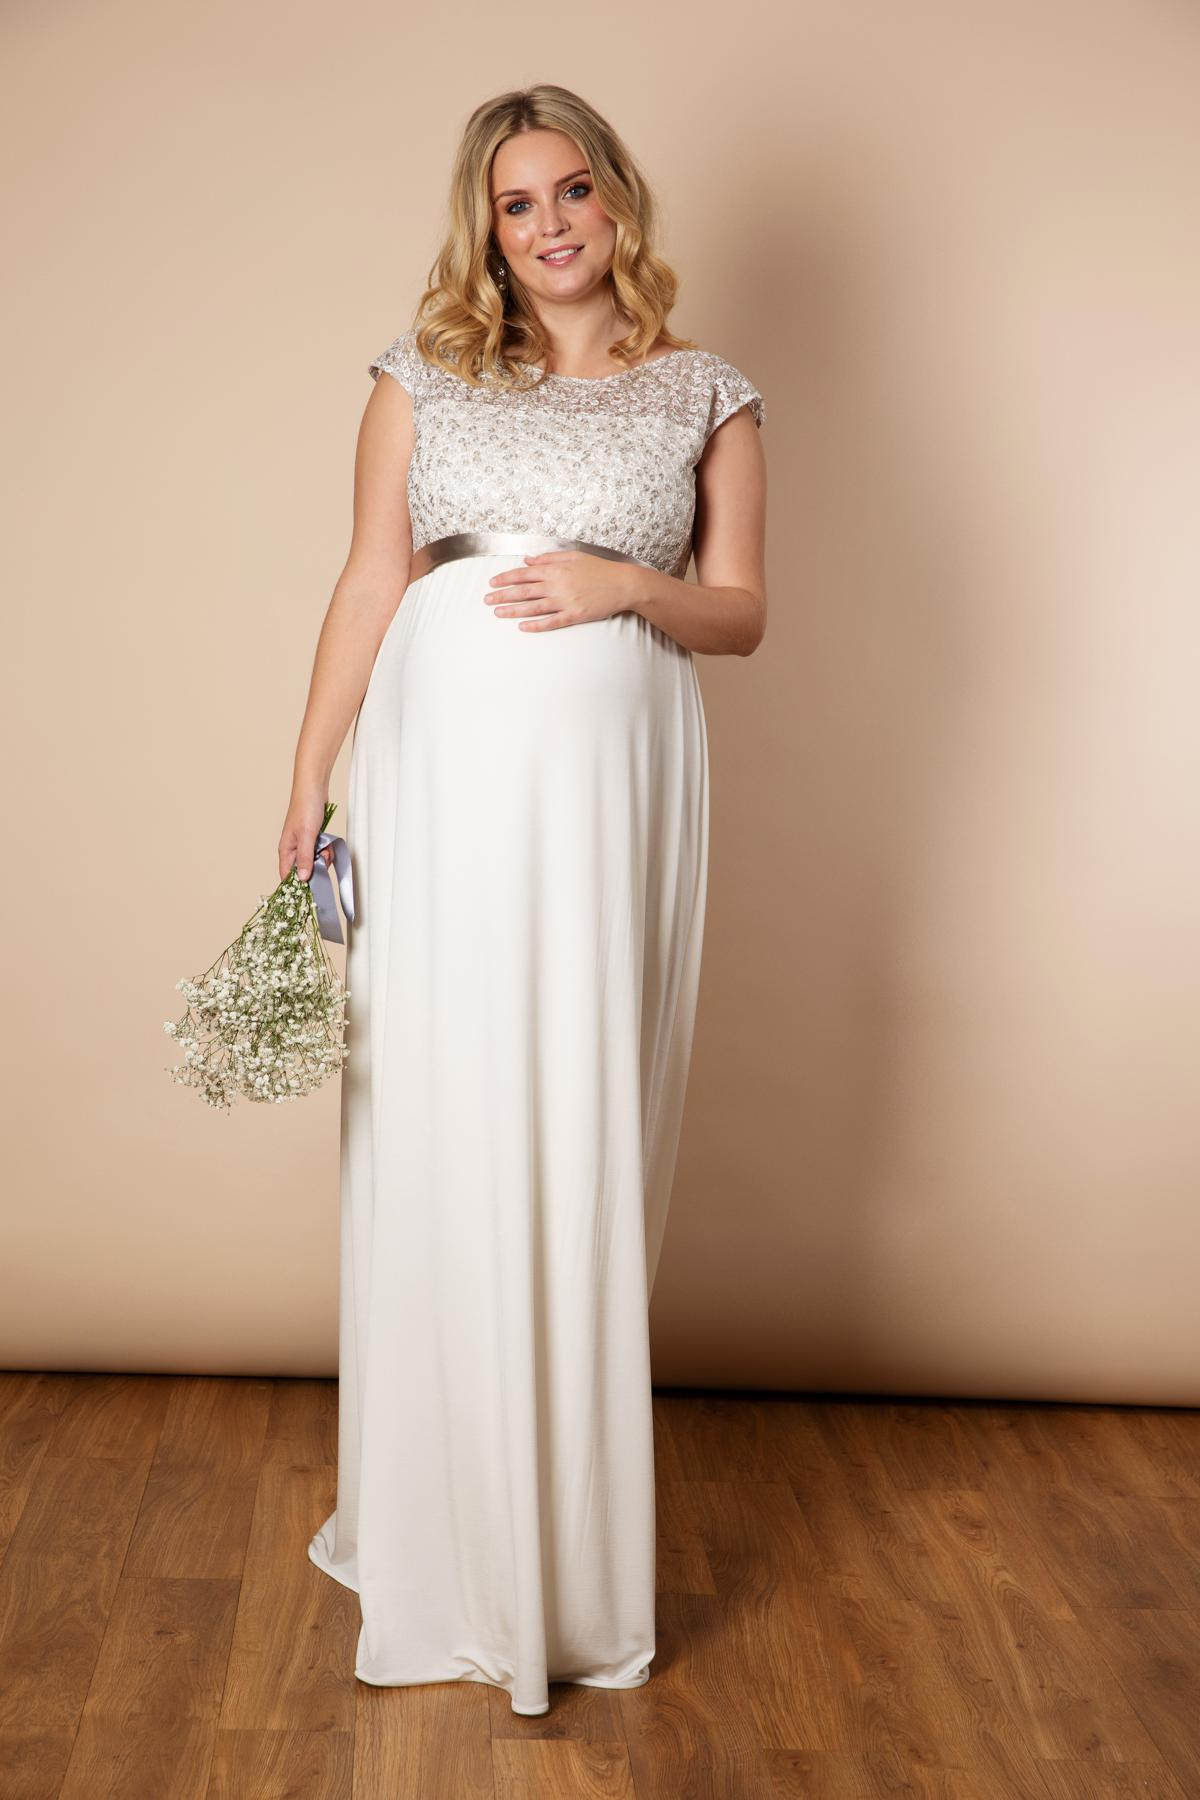 Plus Size Maternity Formal Gown - Carley & Connellan